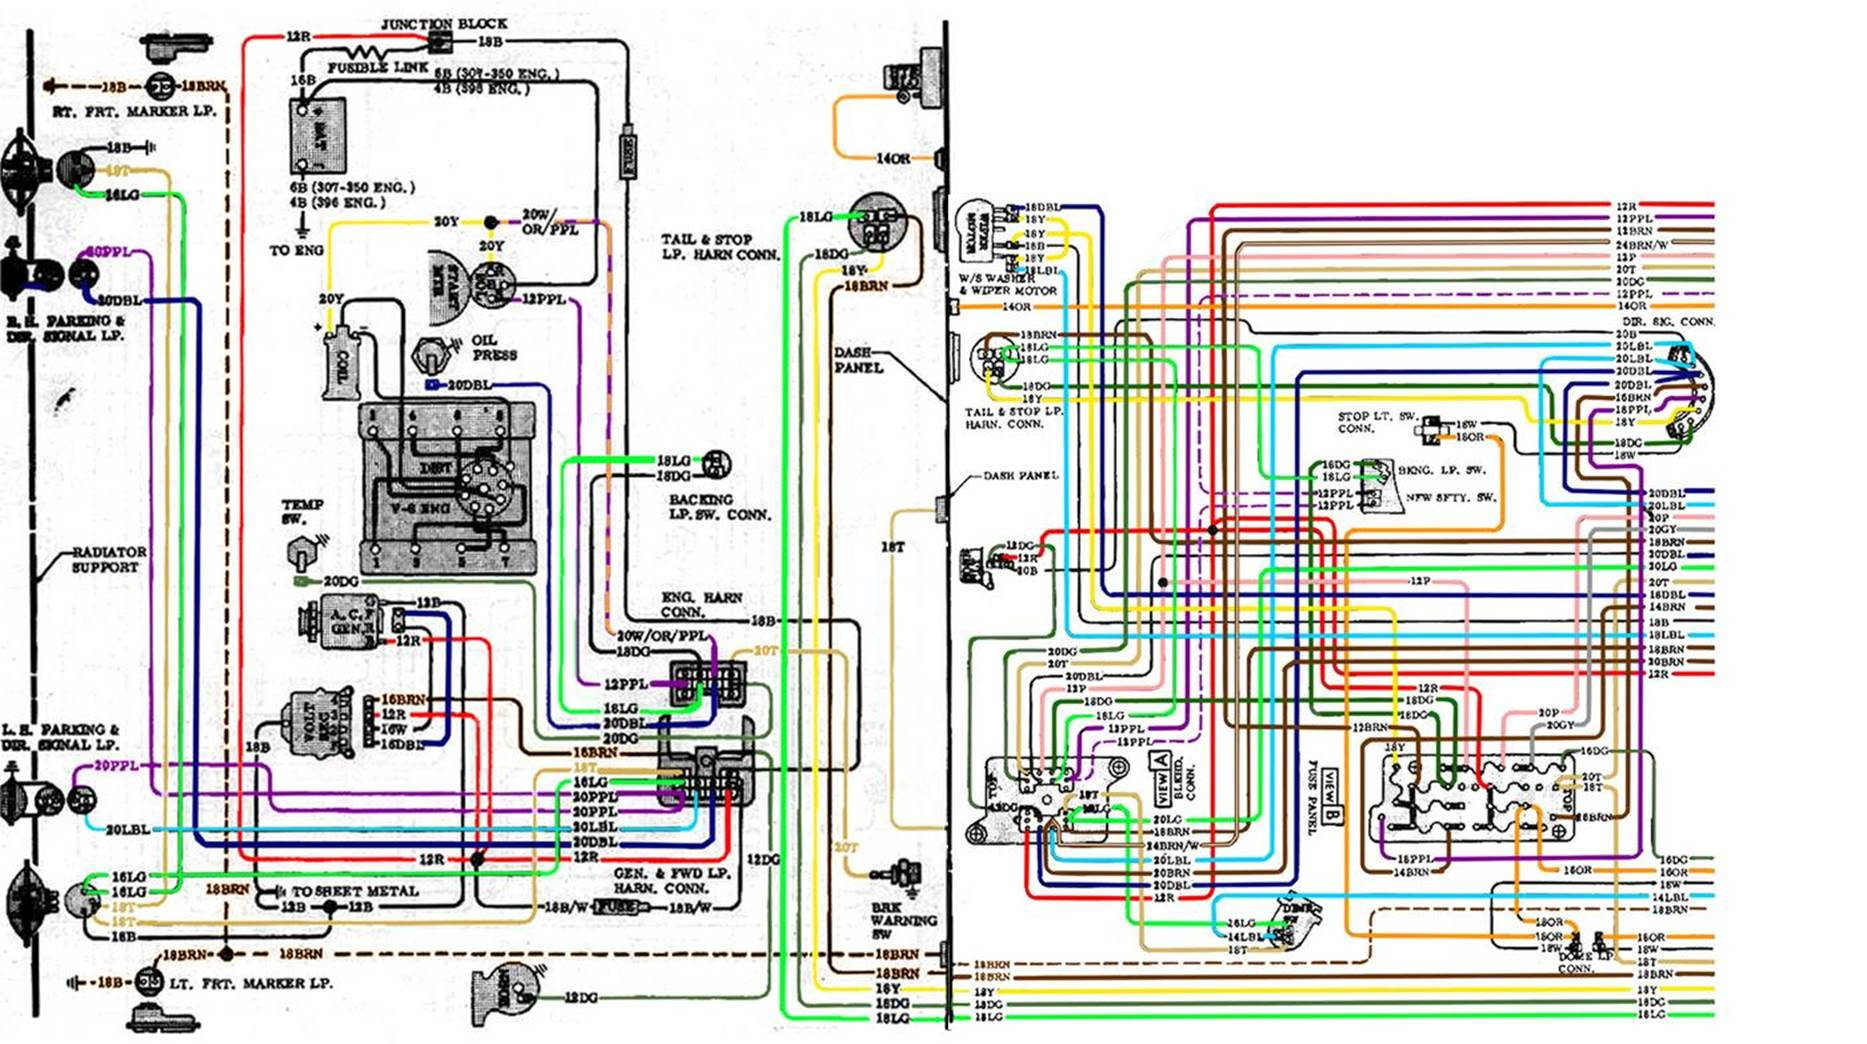 image002 72 c10 wiring diagram chevy truck wiring diagram \u2022 wiring diagrams 1978 chevy truck wiring diagram at reclaimingppi.co